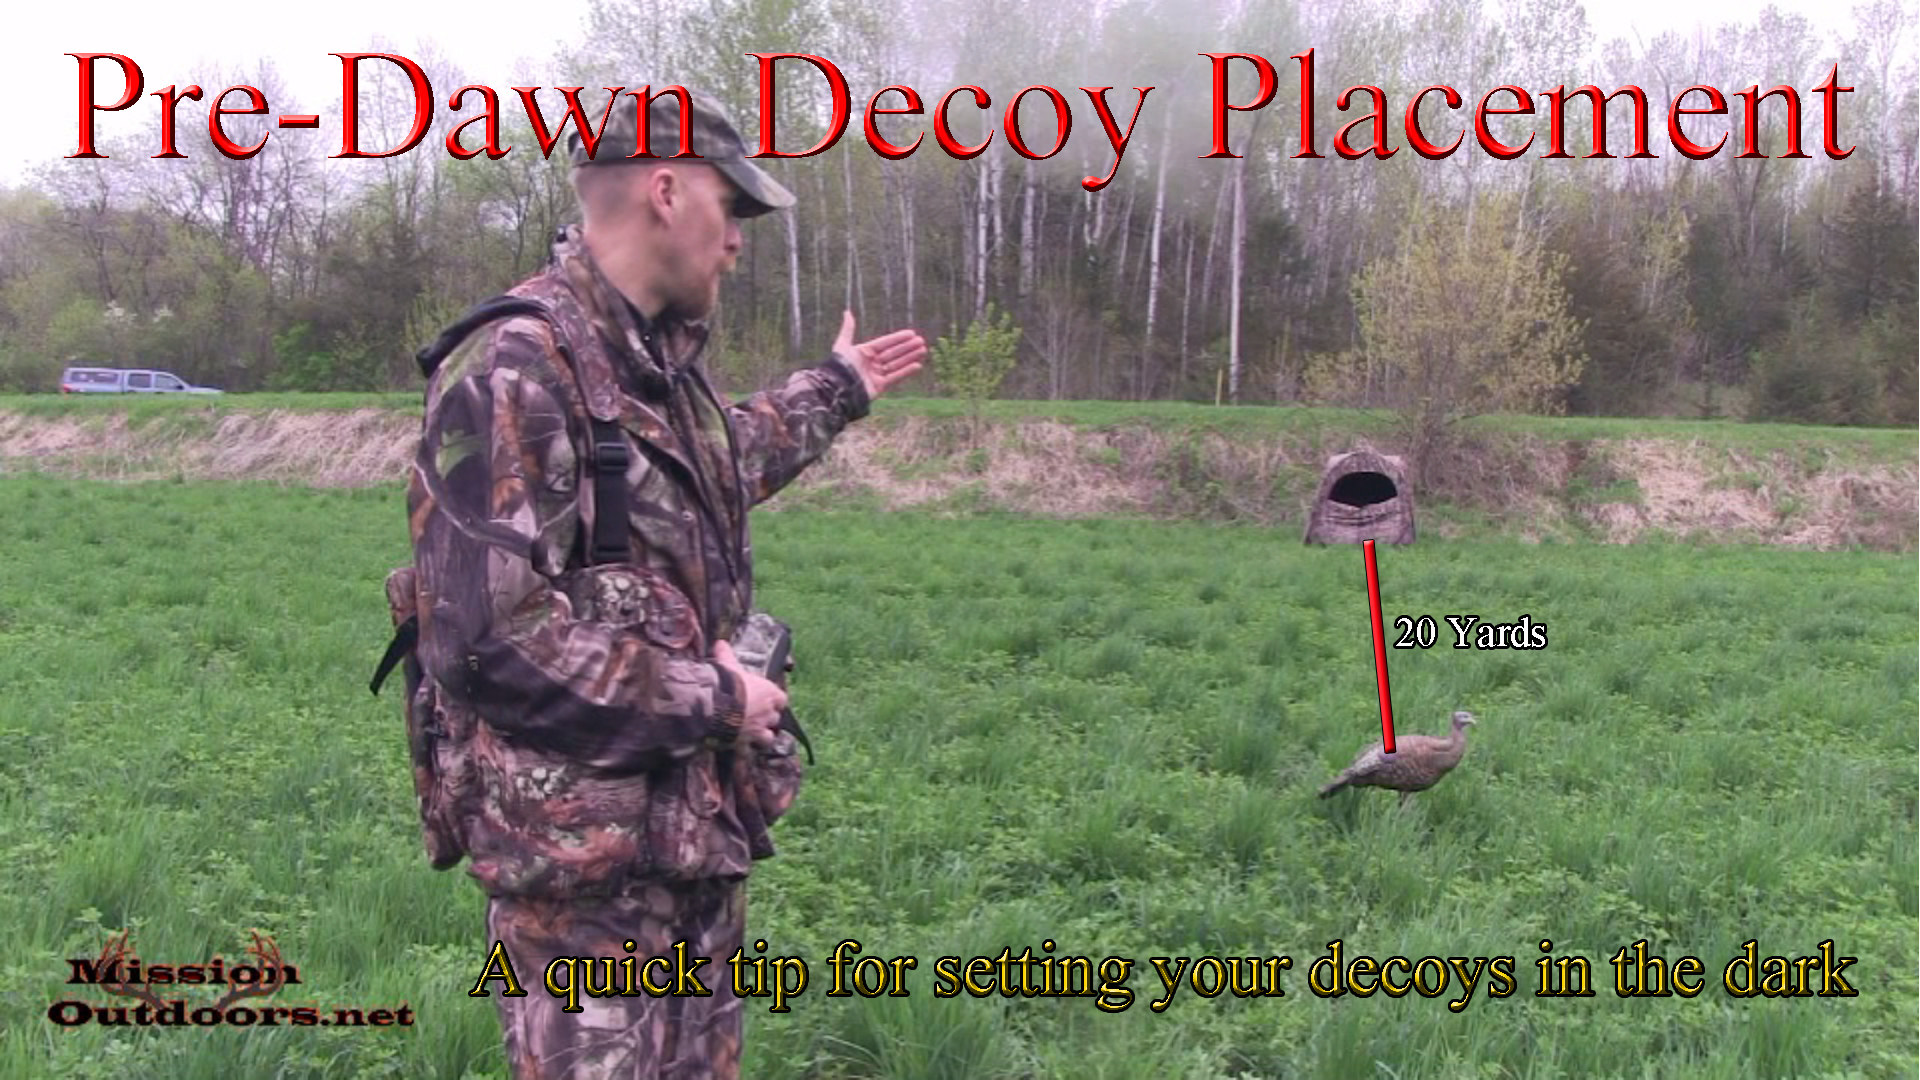 Pre-Dawn Decoy Placement – MissionOutdoors.Net